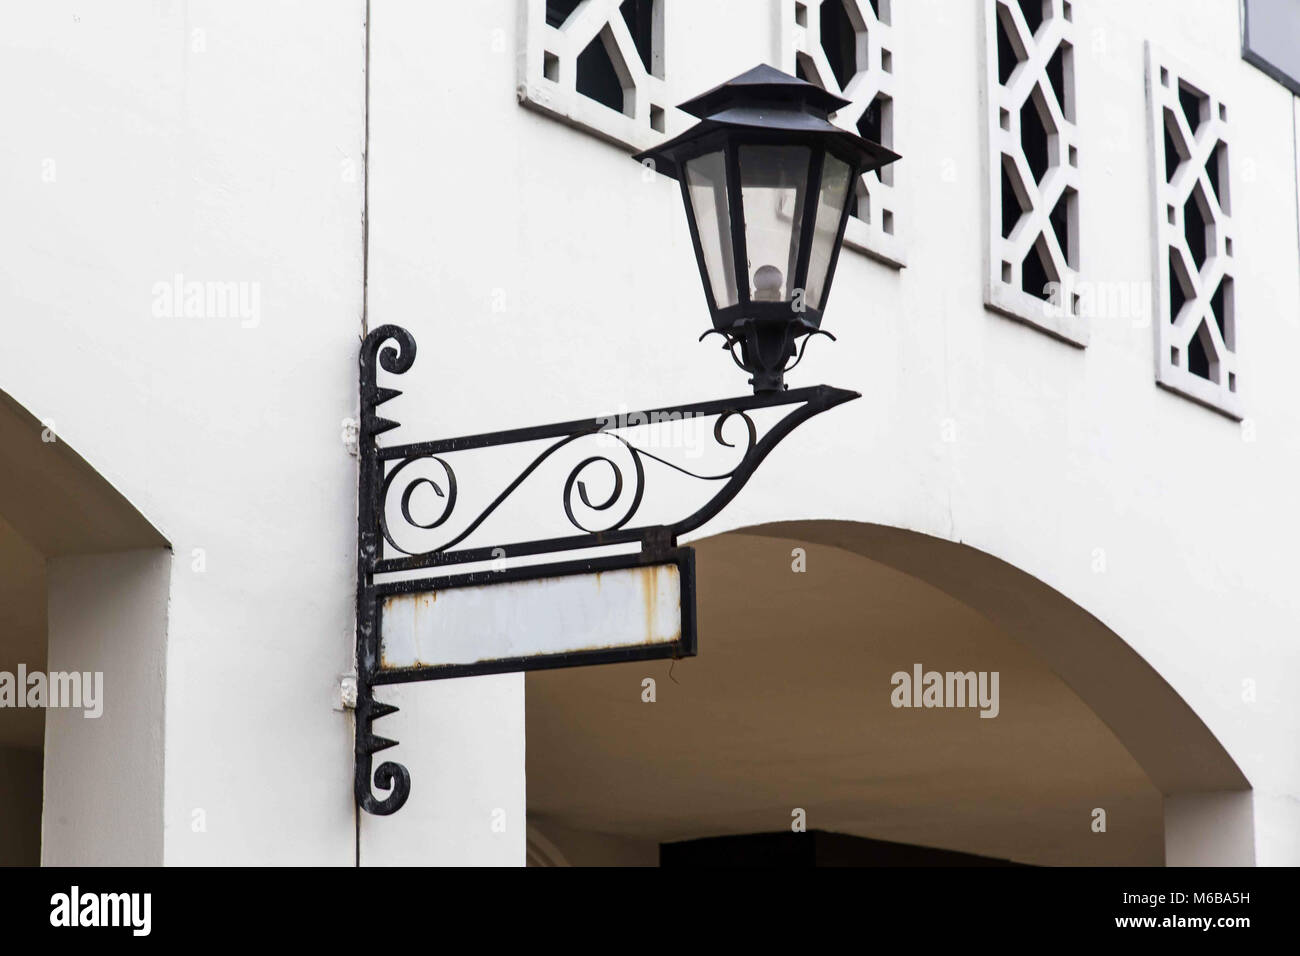 Old lamp and street sign - Stock Image